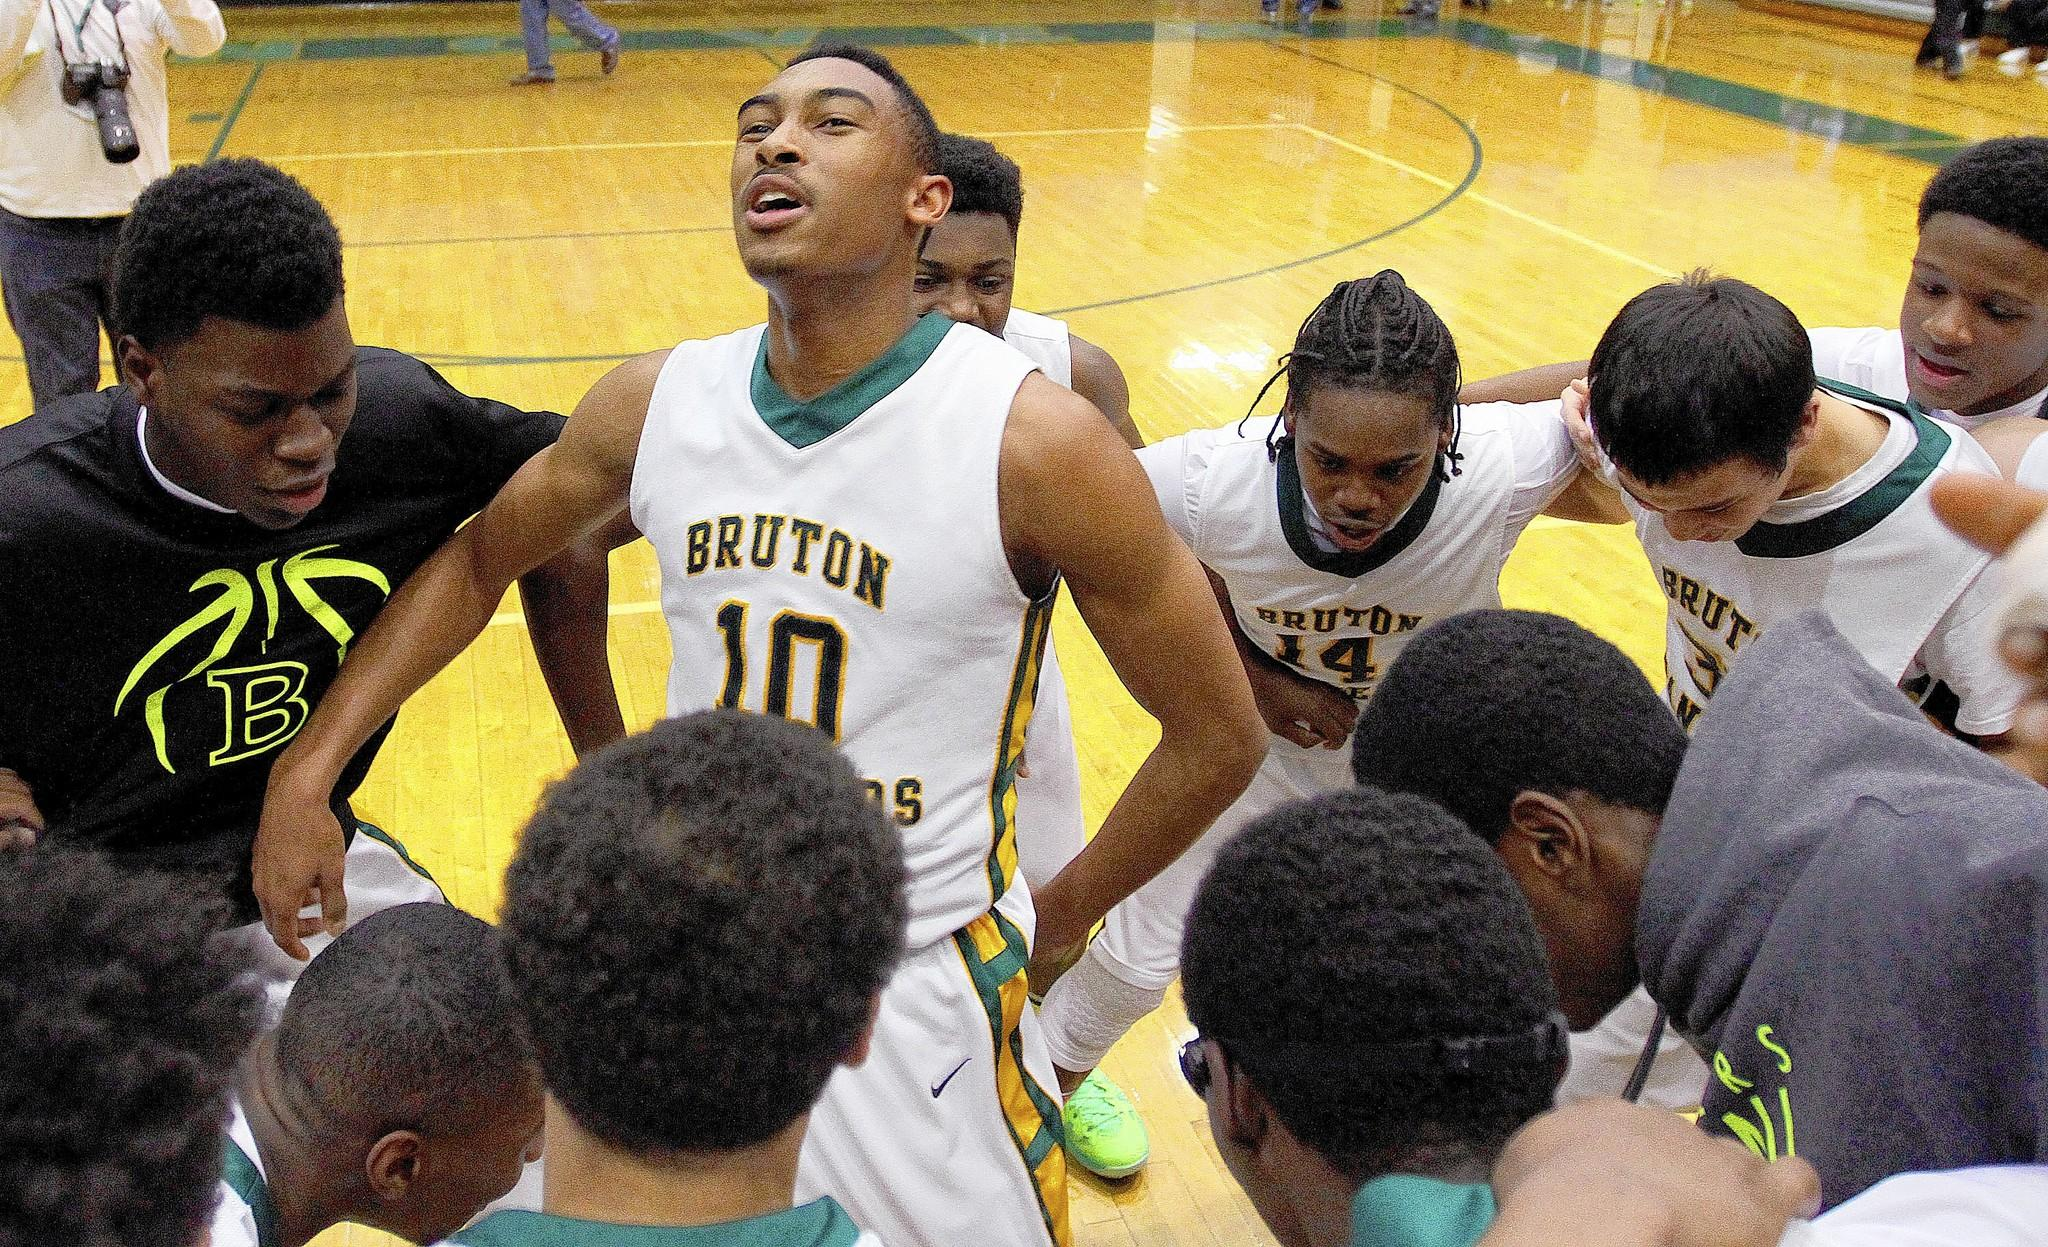 Marcus Carter celebrates with teammates after they beat Prince Edward County in overtime on Saturday in Hanover.